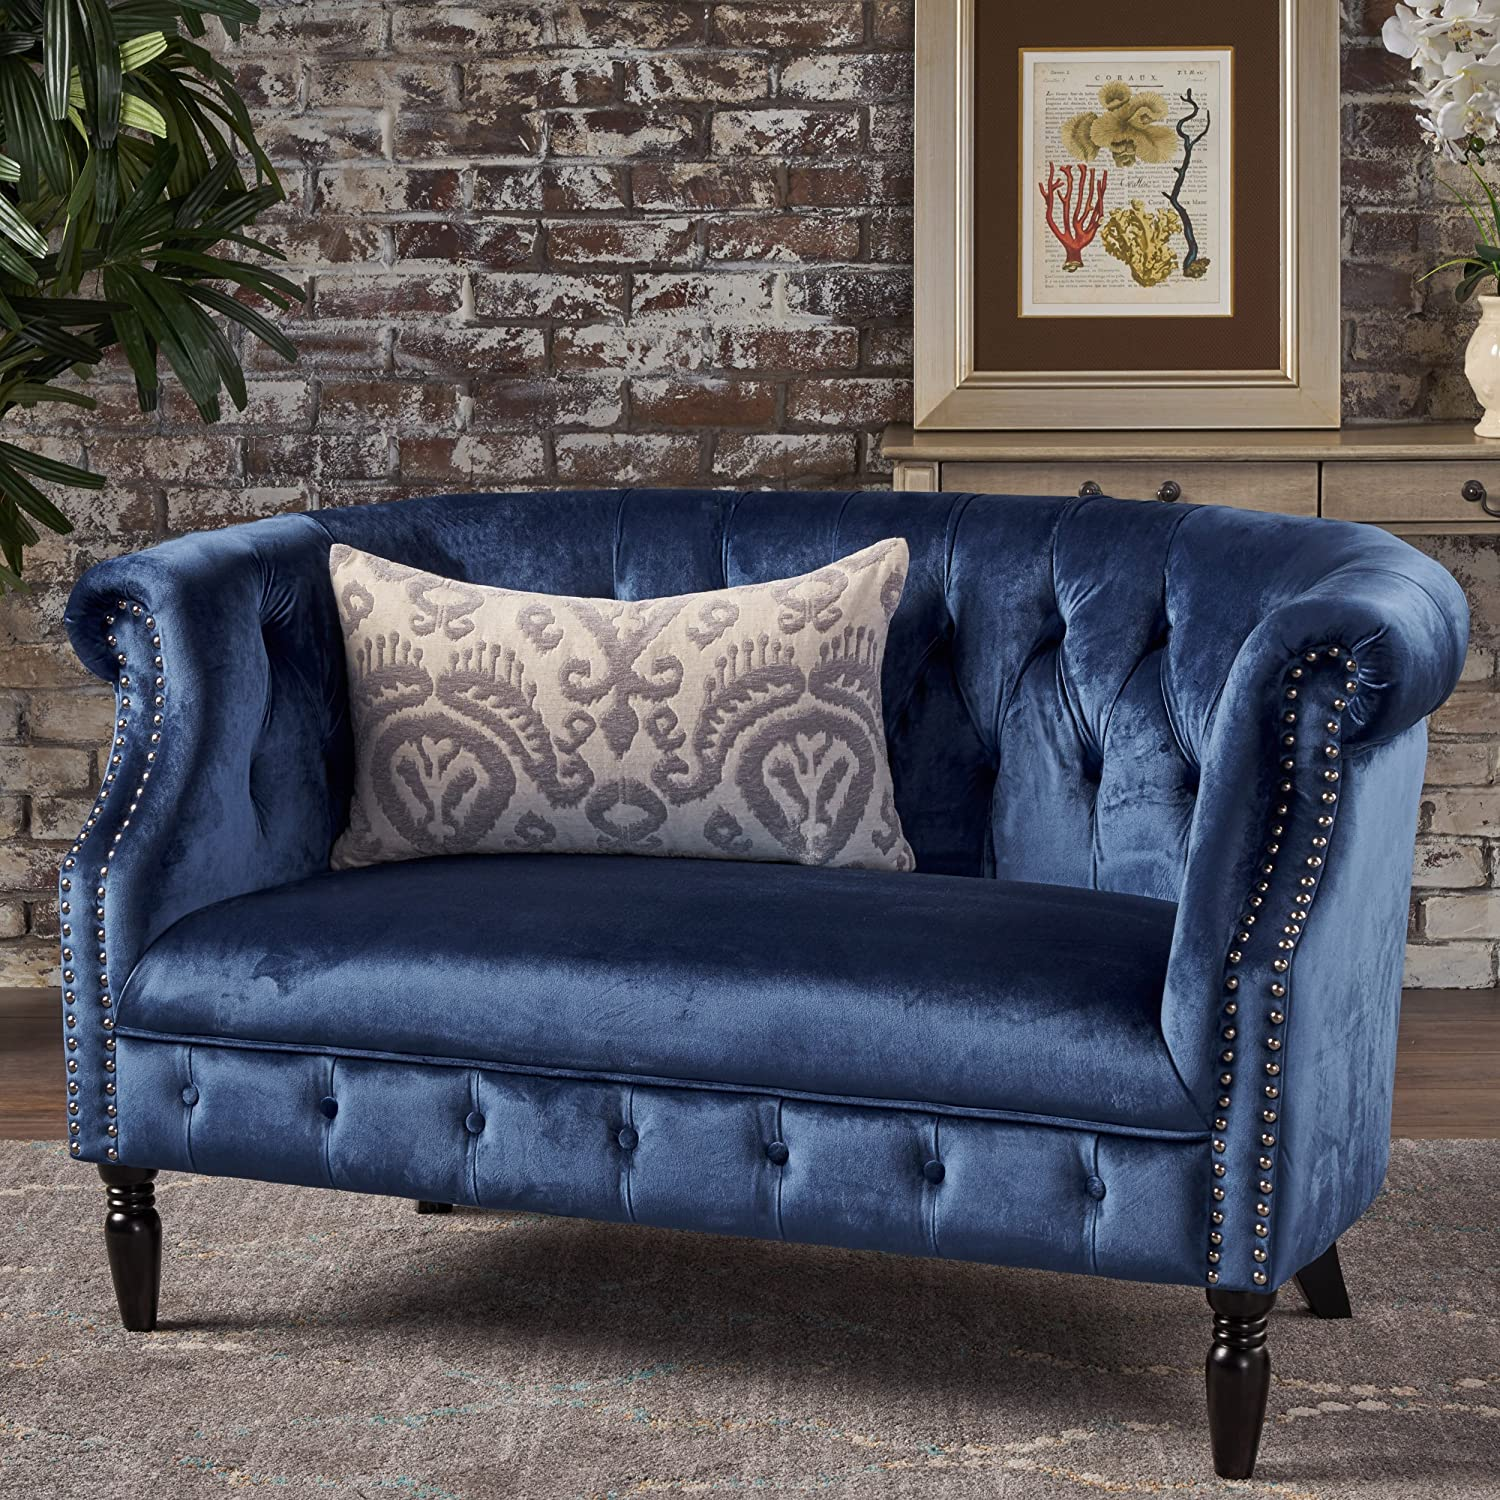 Amazing Christopher Knight Home Melaina Navy Blue Tufted Rolled Arm Velvet Chesterfield Loveseat Couch Gmtry Best Dining Table And Chair Ideas Images Gmtryco